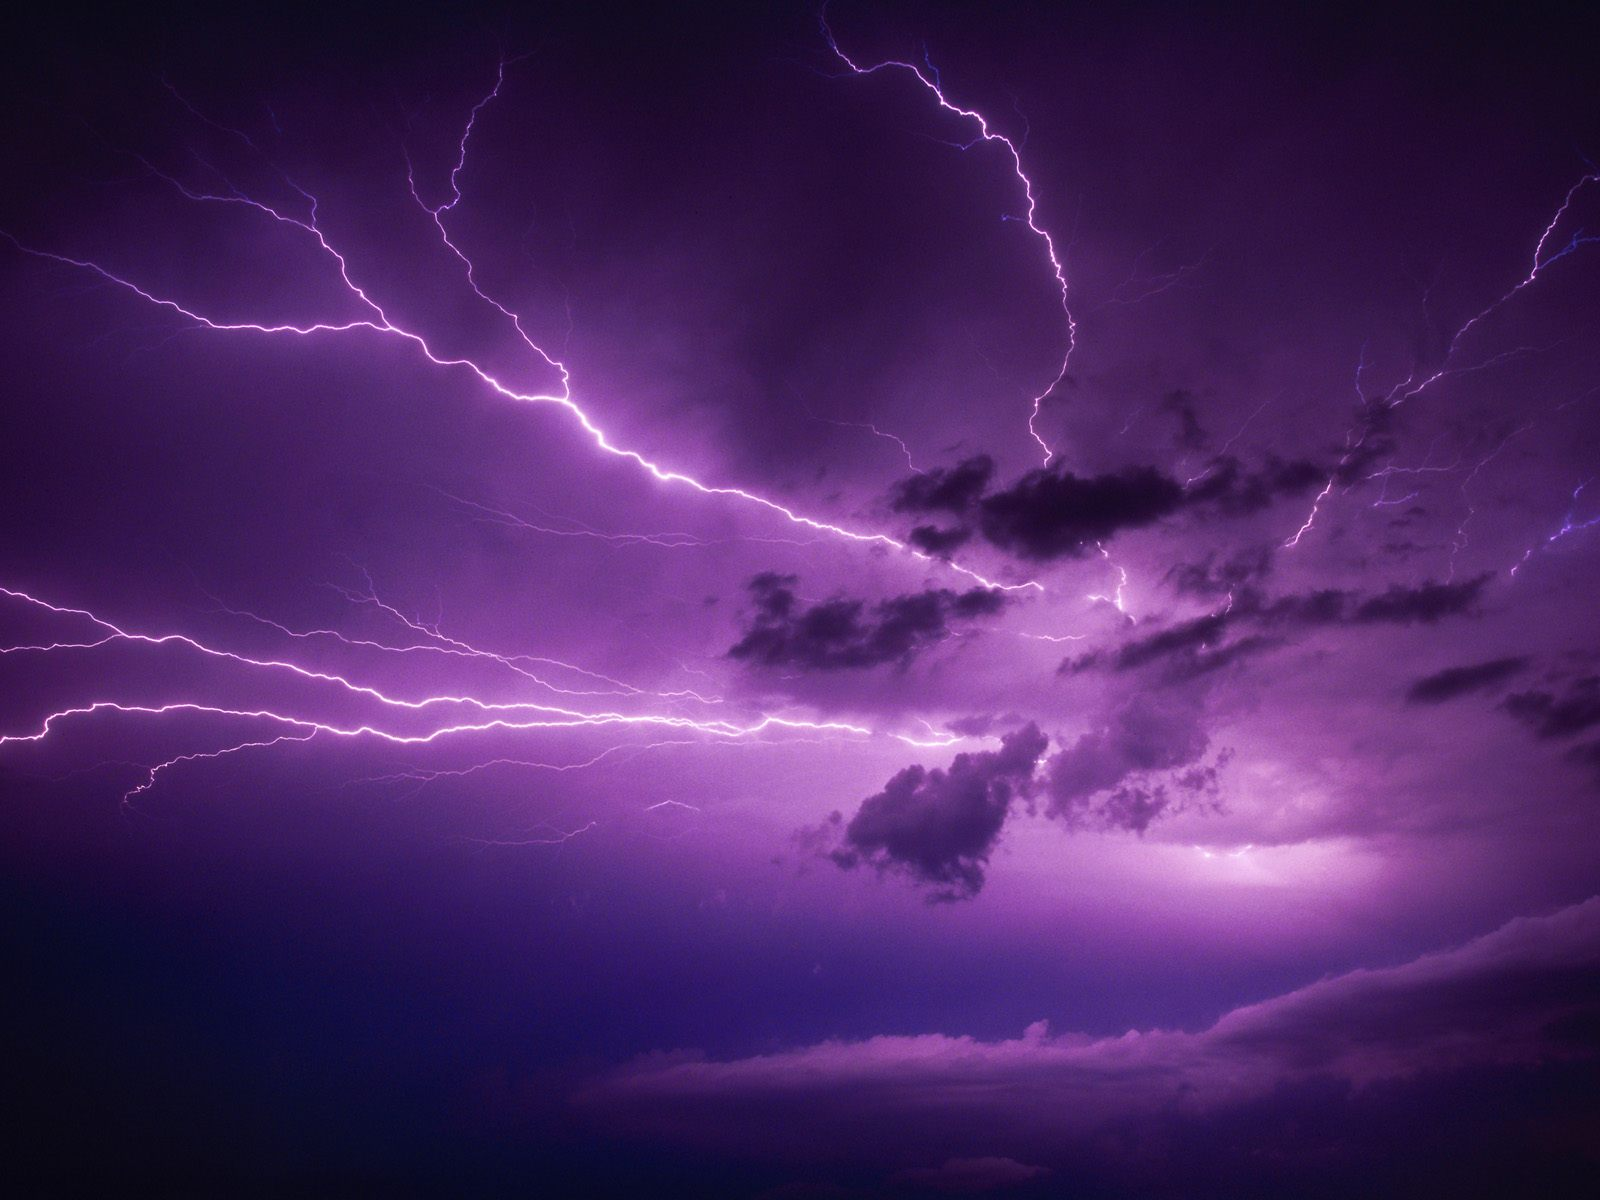 Lightning Storm Clouds Wallpaper 3